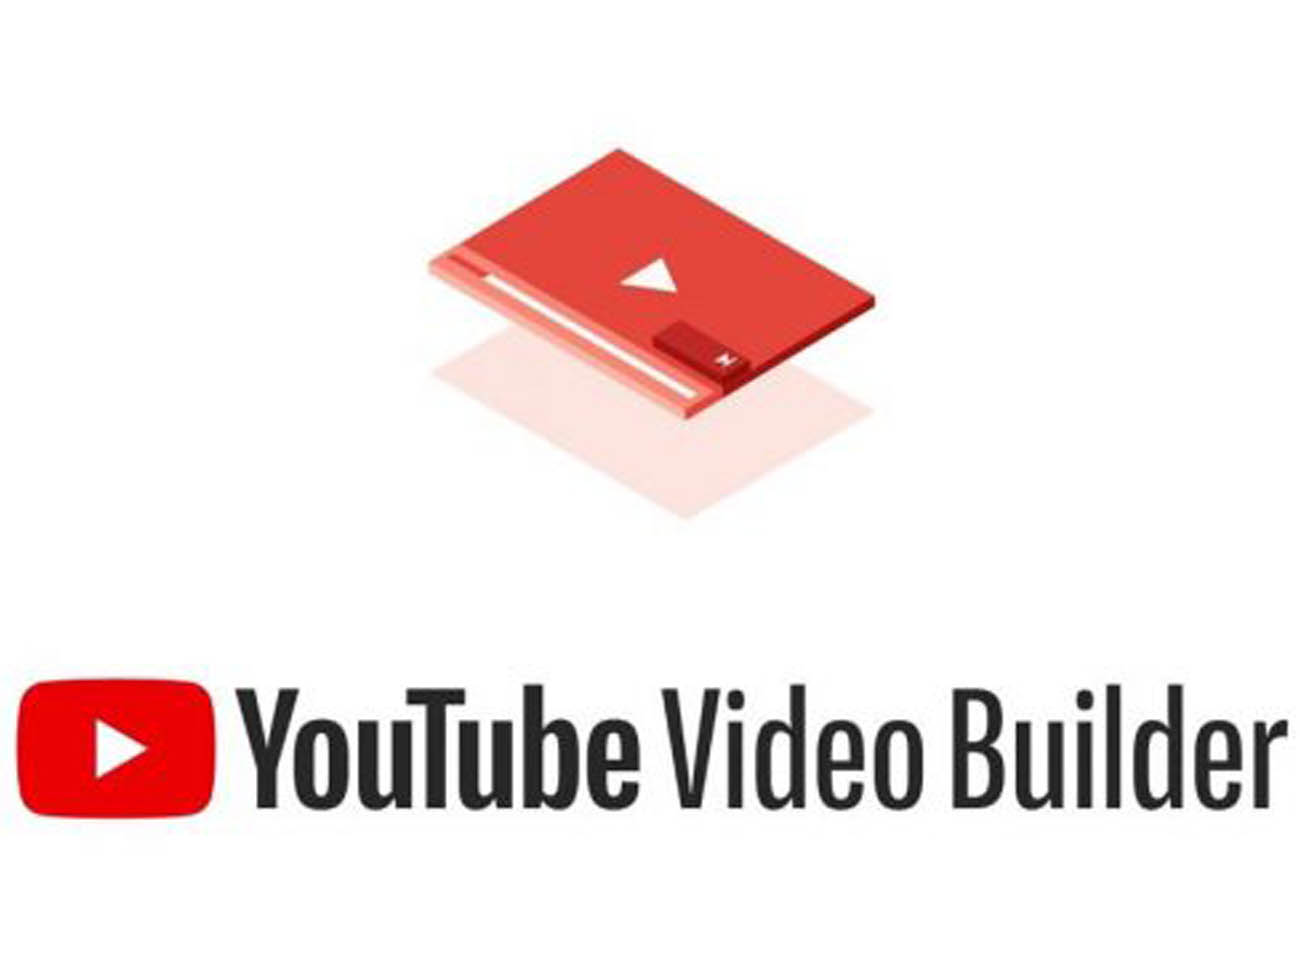 Youtube Video Builder Nedir